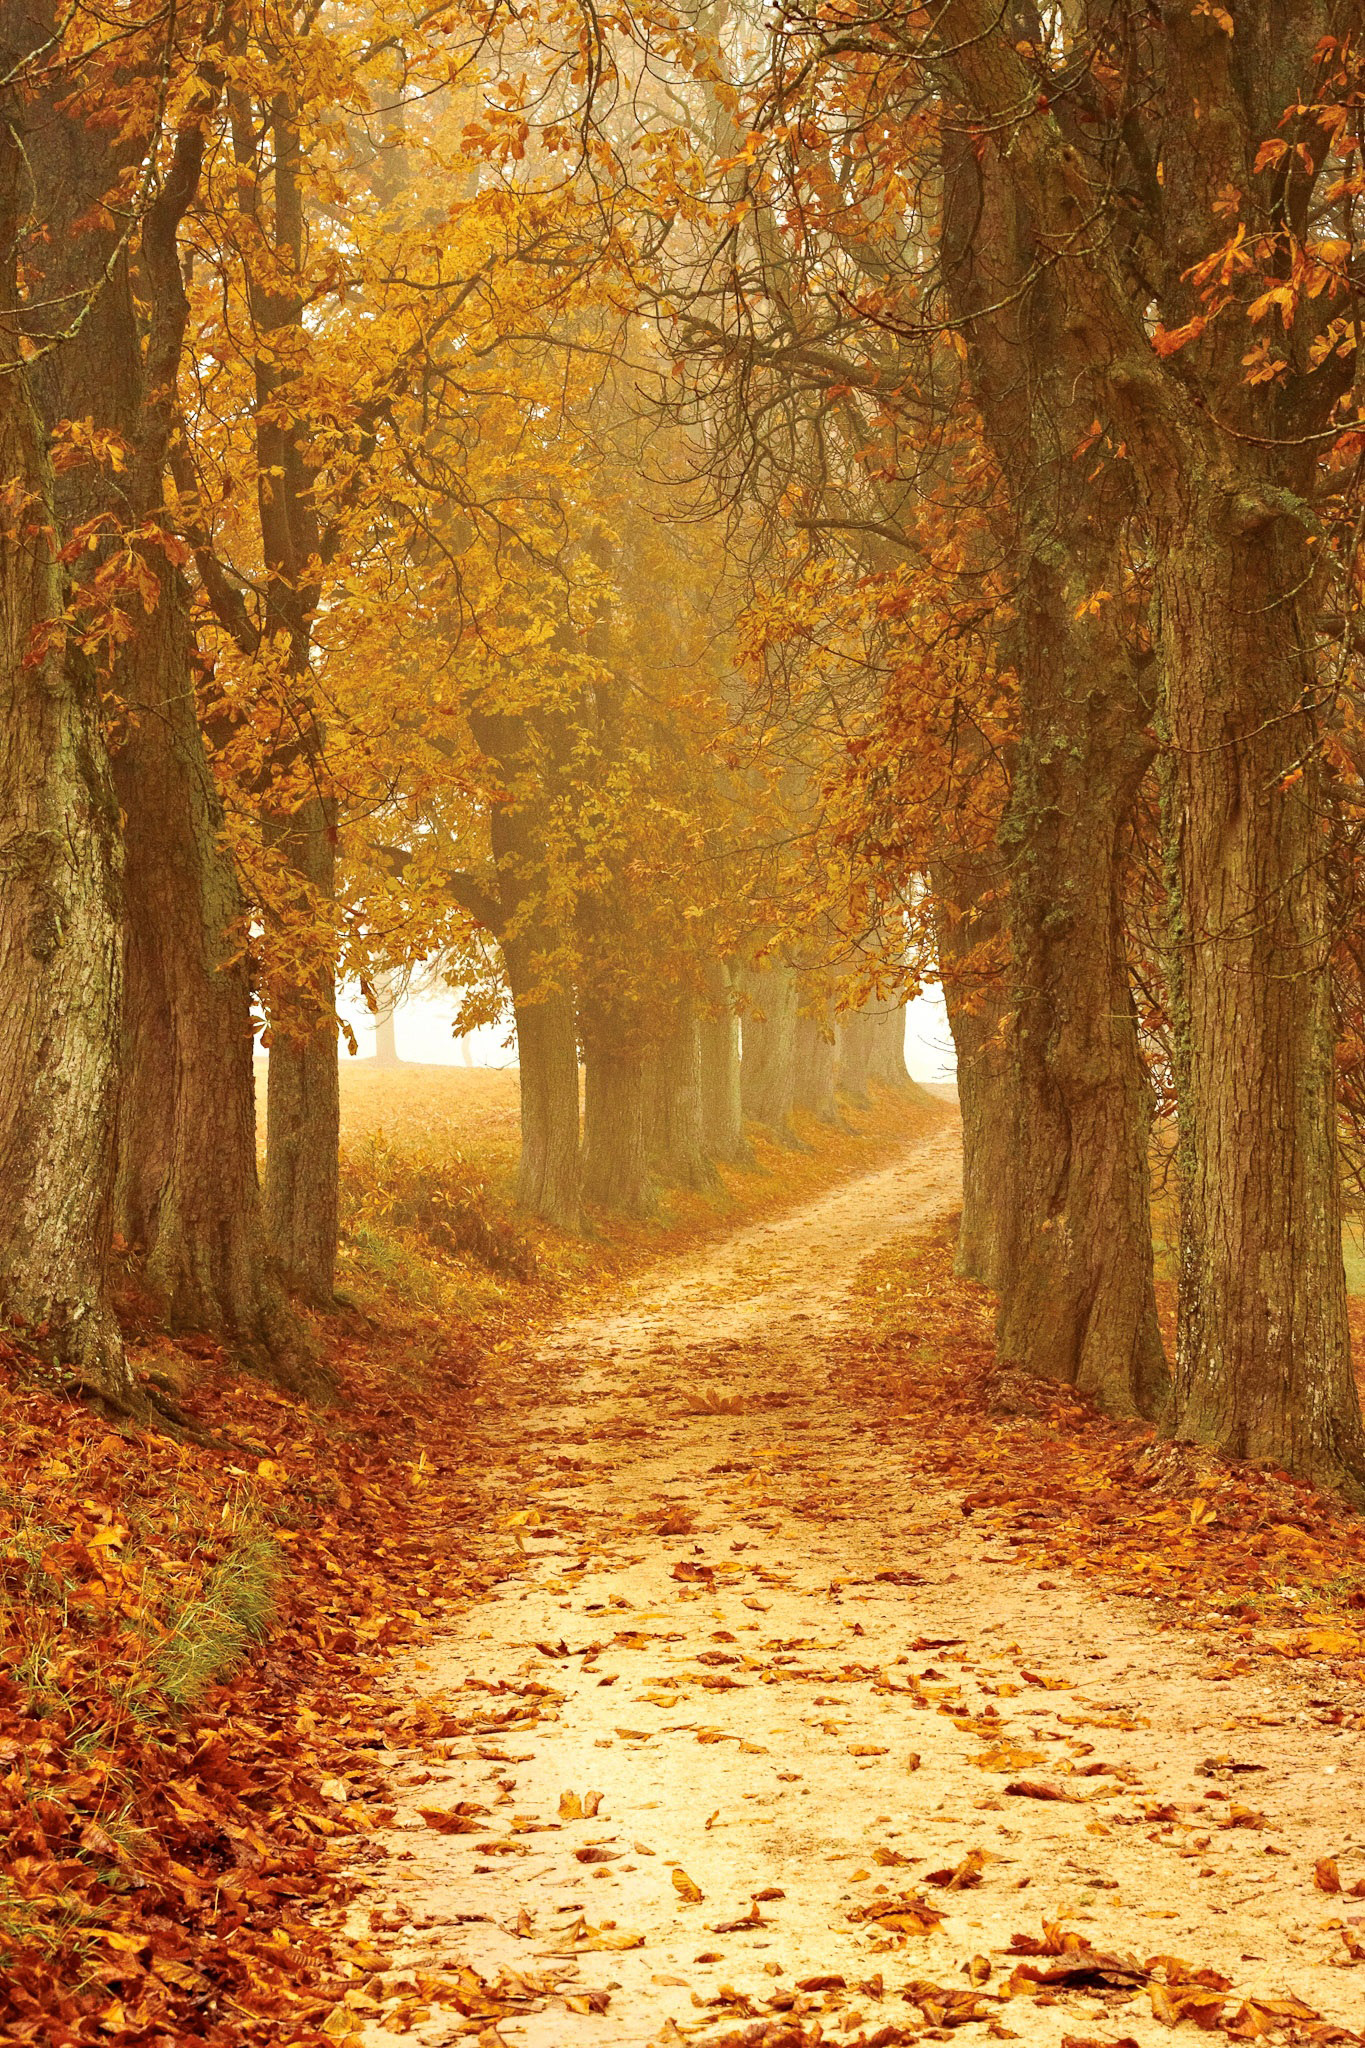 Fall Leaves Hd Wallpaper Golden Path In Autumn Between The Trees Image Free Stock